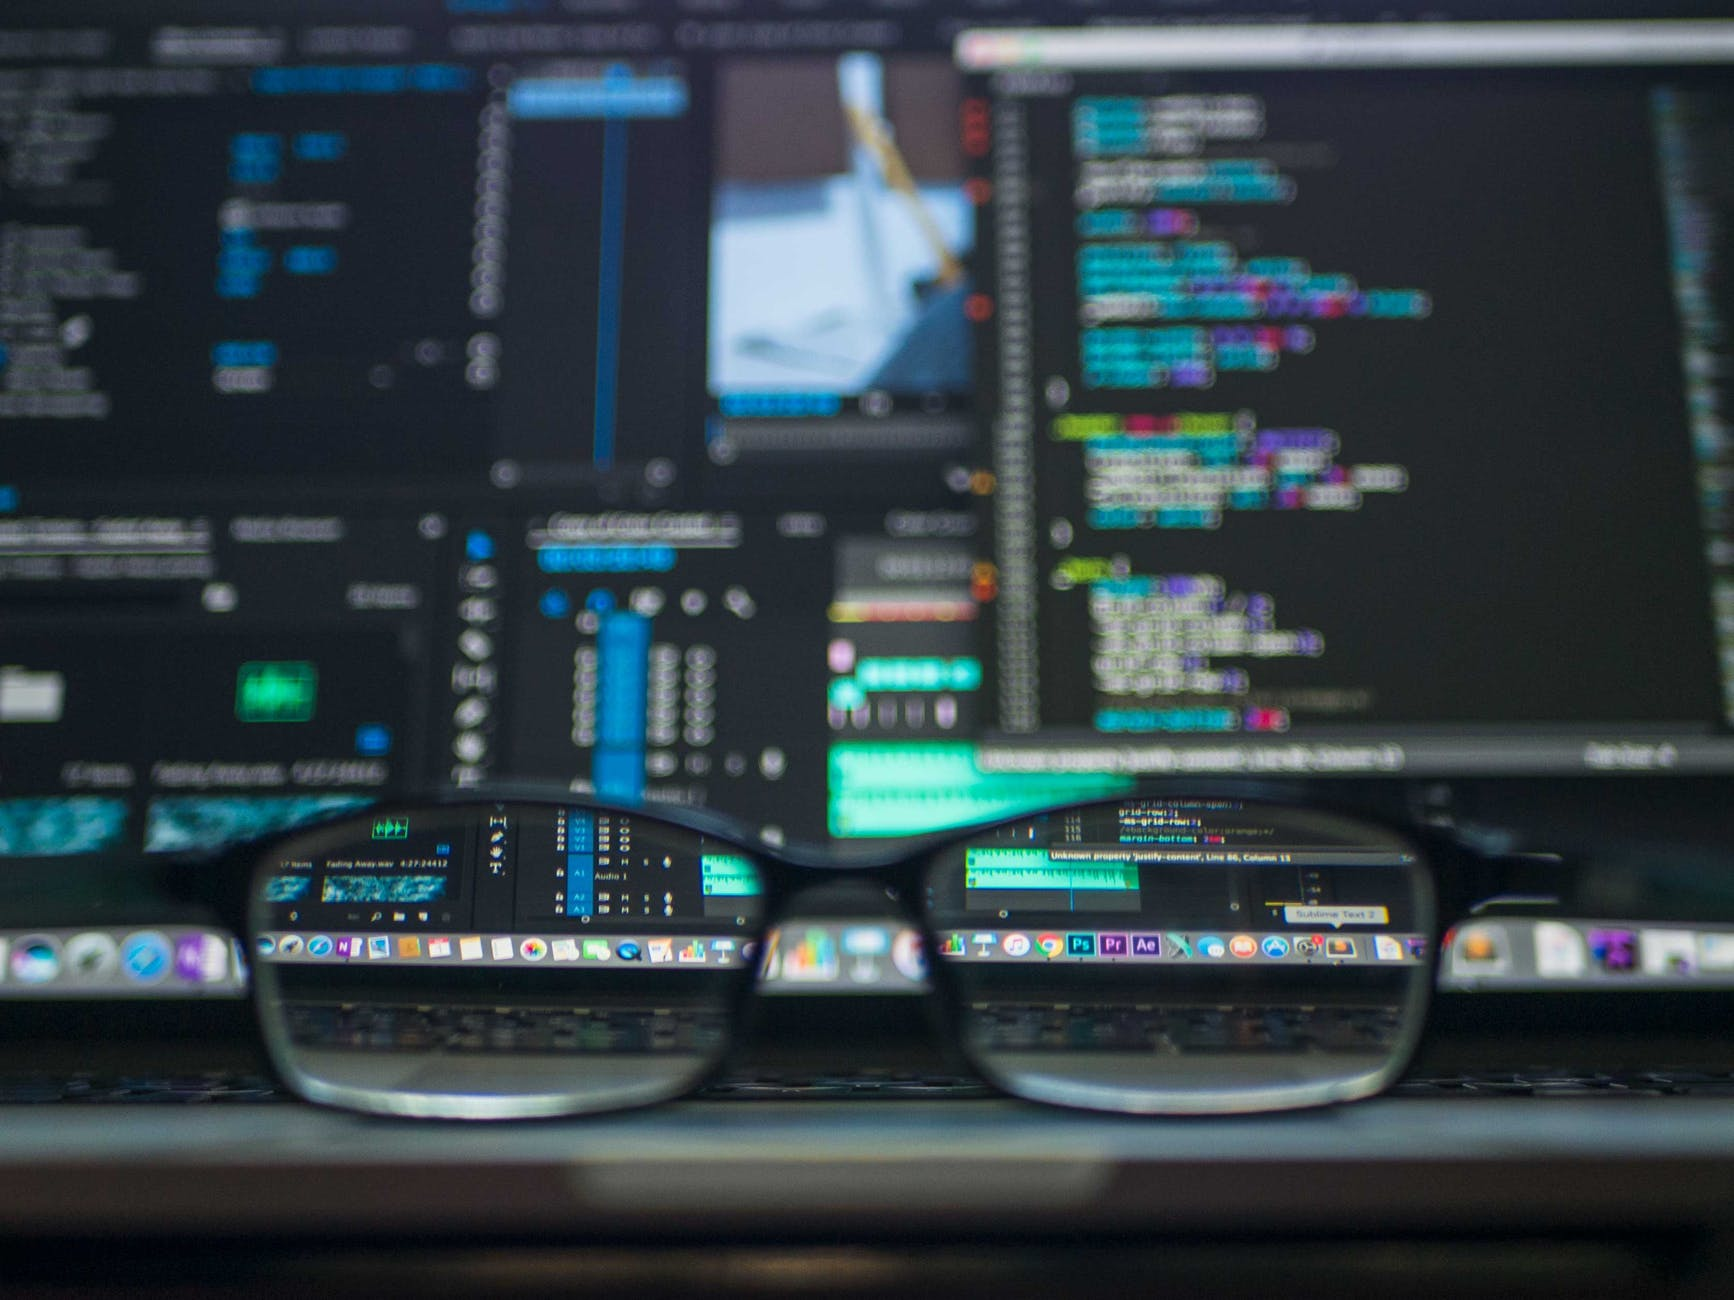 glasses on a computer desk, showing gdpr and financial websites